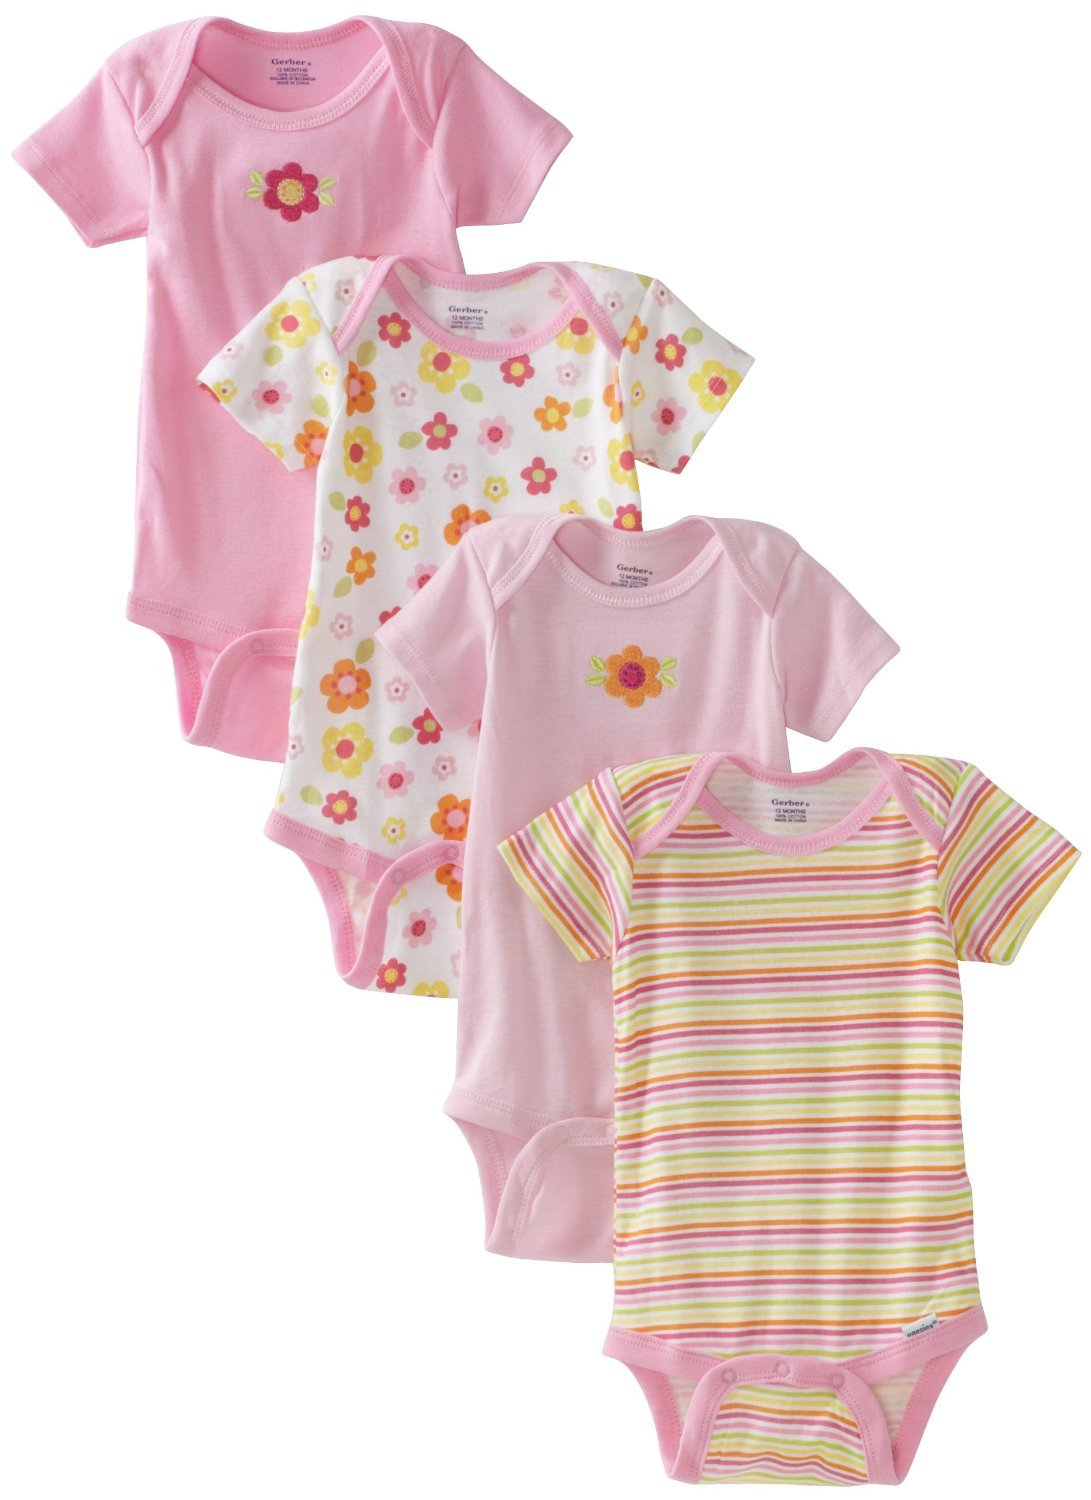 12-18 months Gerber Short Sleeve Onesies Girls Daisy Design 4 Pack